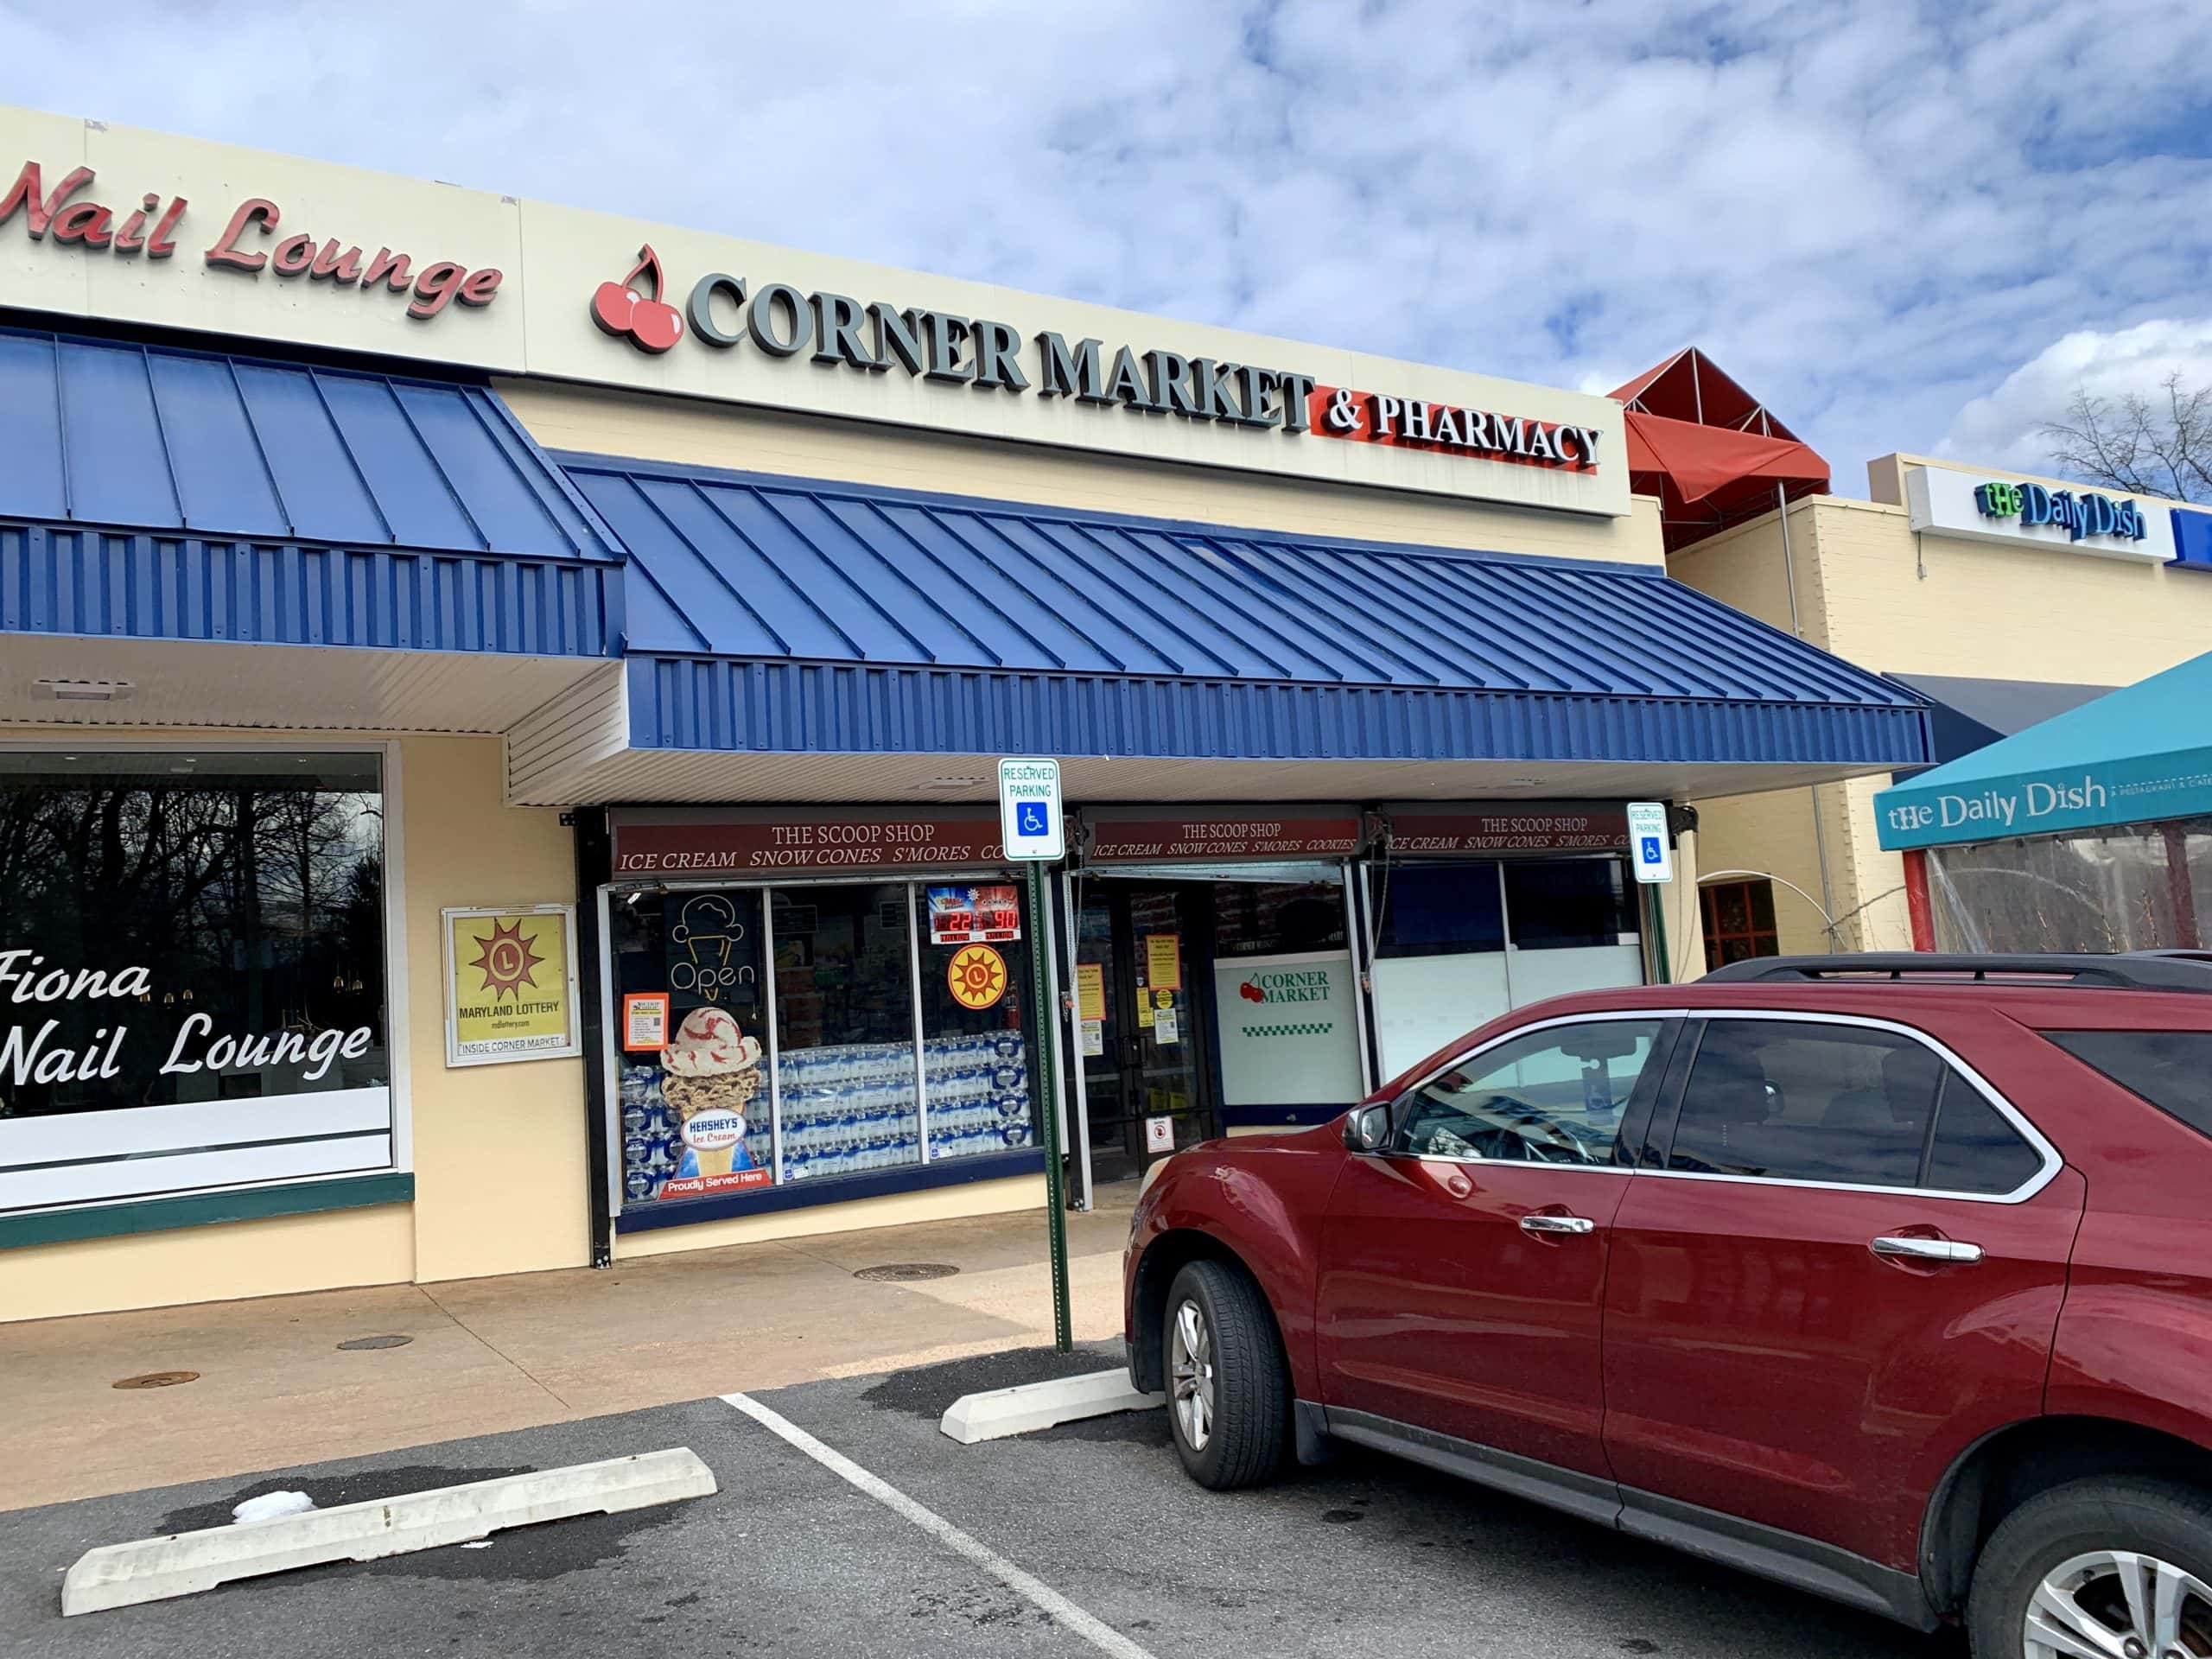 Corner Market Closes Pharmacy Section of the Business